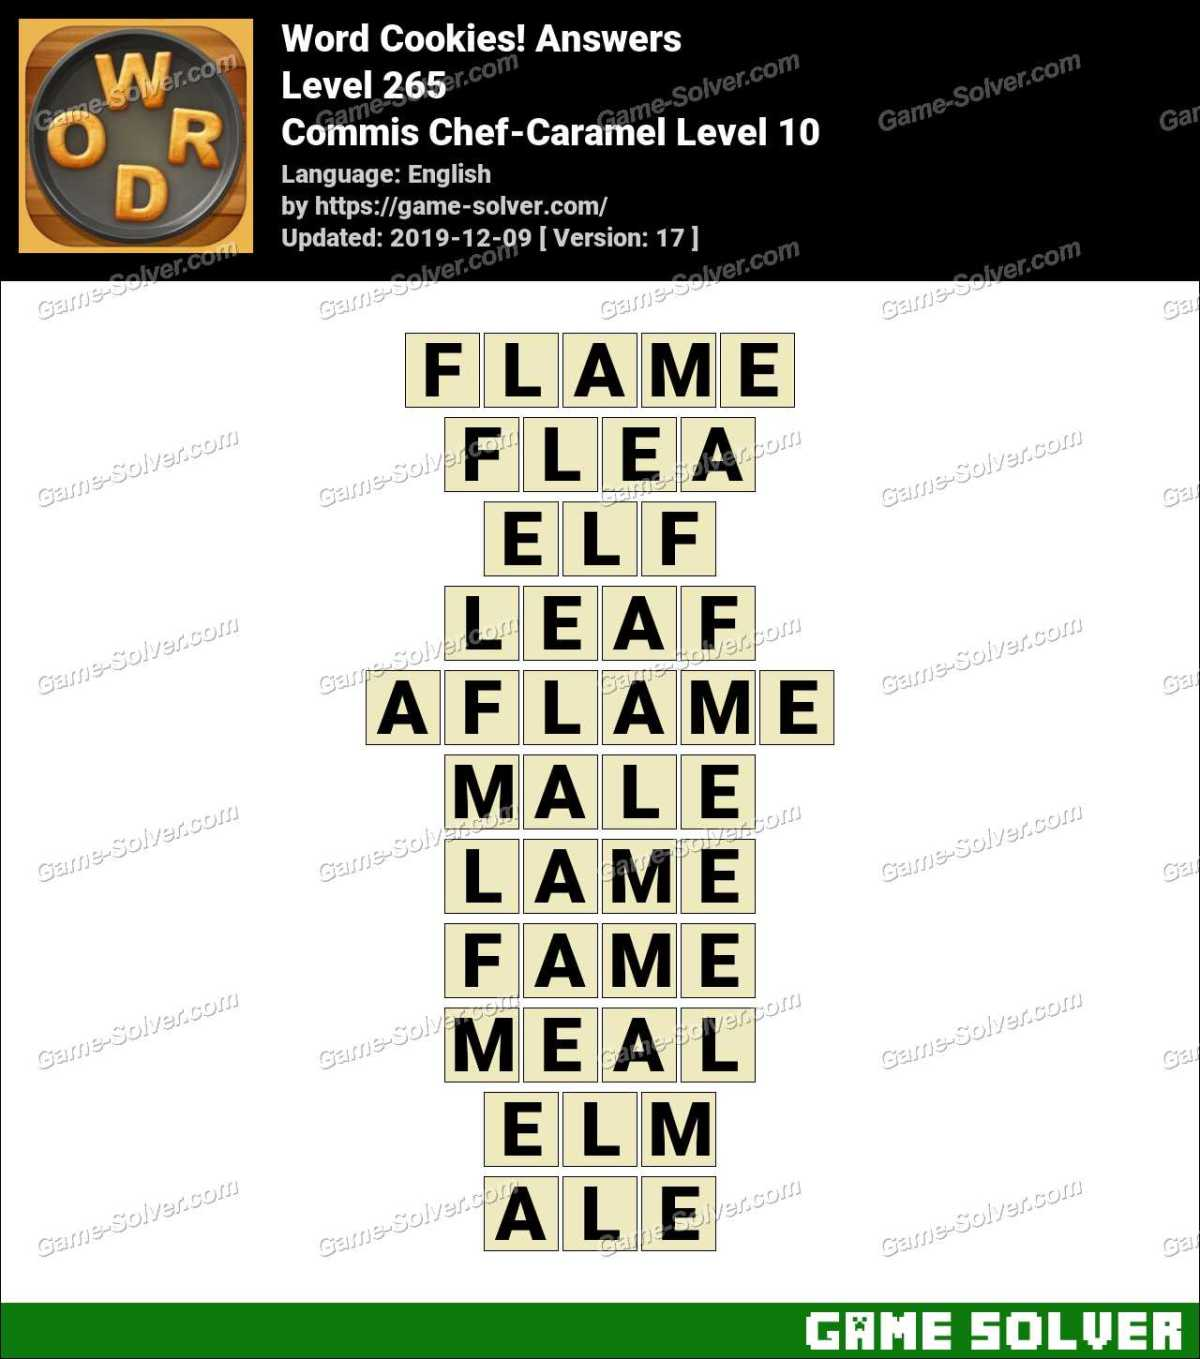 Word Cookies Commis Chef-Caramel Level 10 Answers